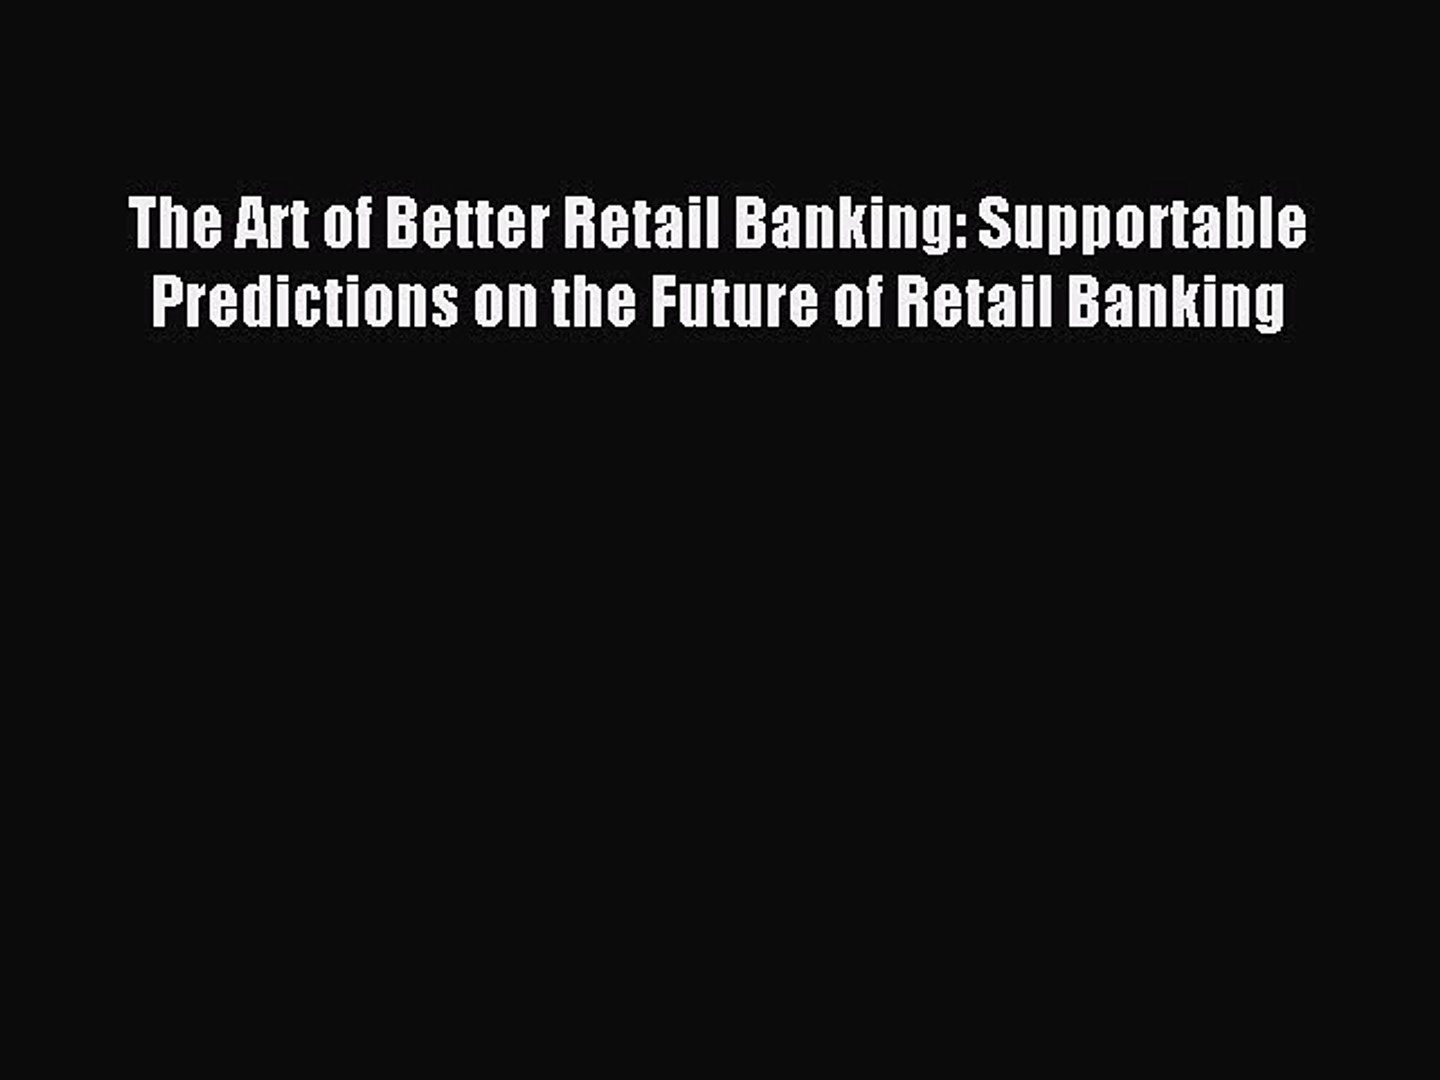 Read The Art of Better Retail Banking: Supportable Predictions on the Future of Retail Banking